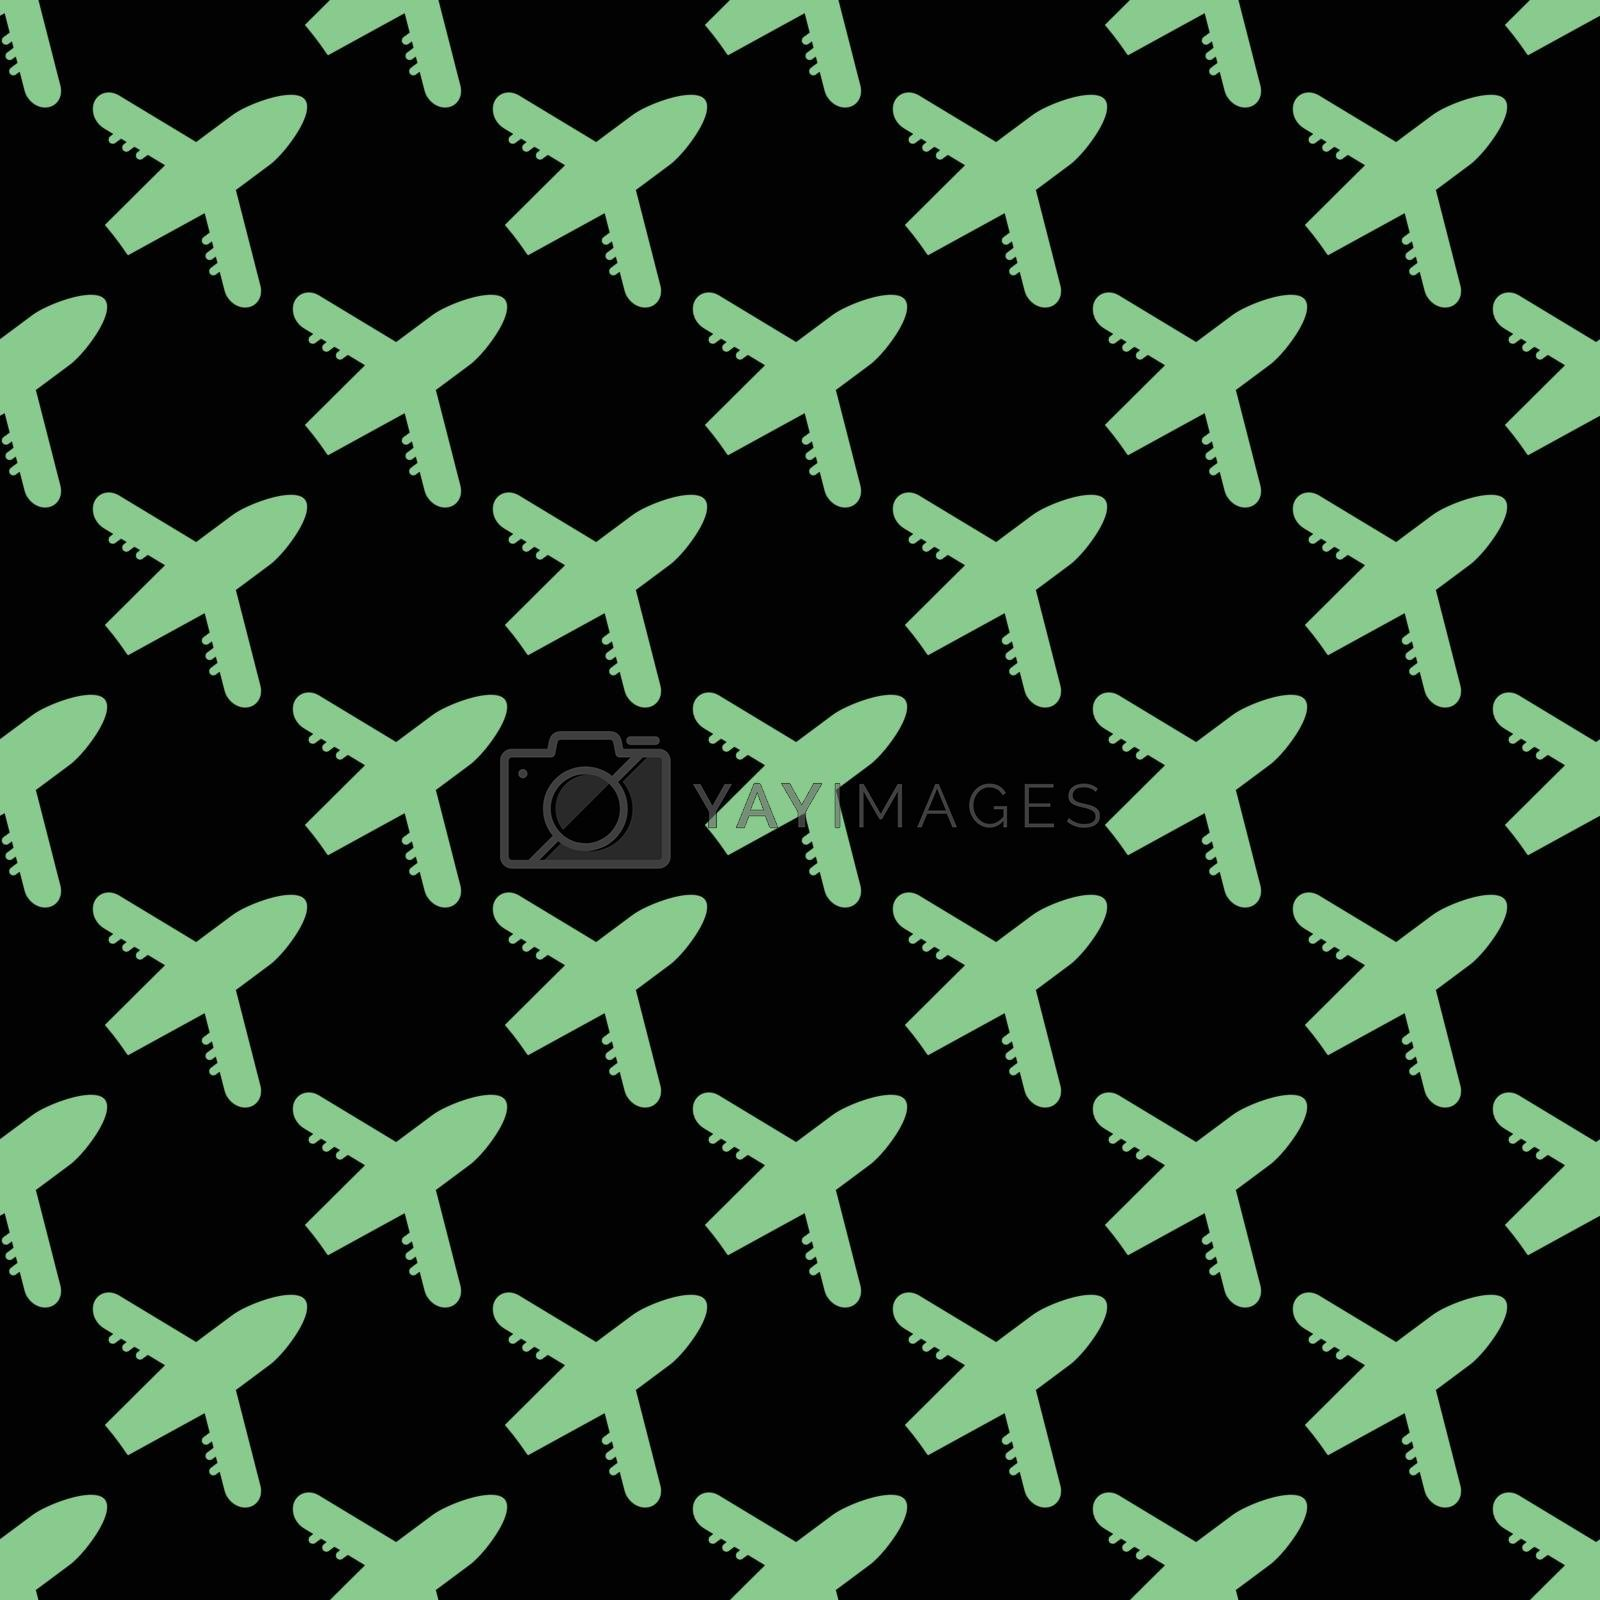 Seamless vector airplane pattern in green color. Flat simple style for any web design or textile